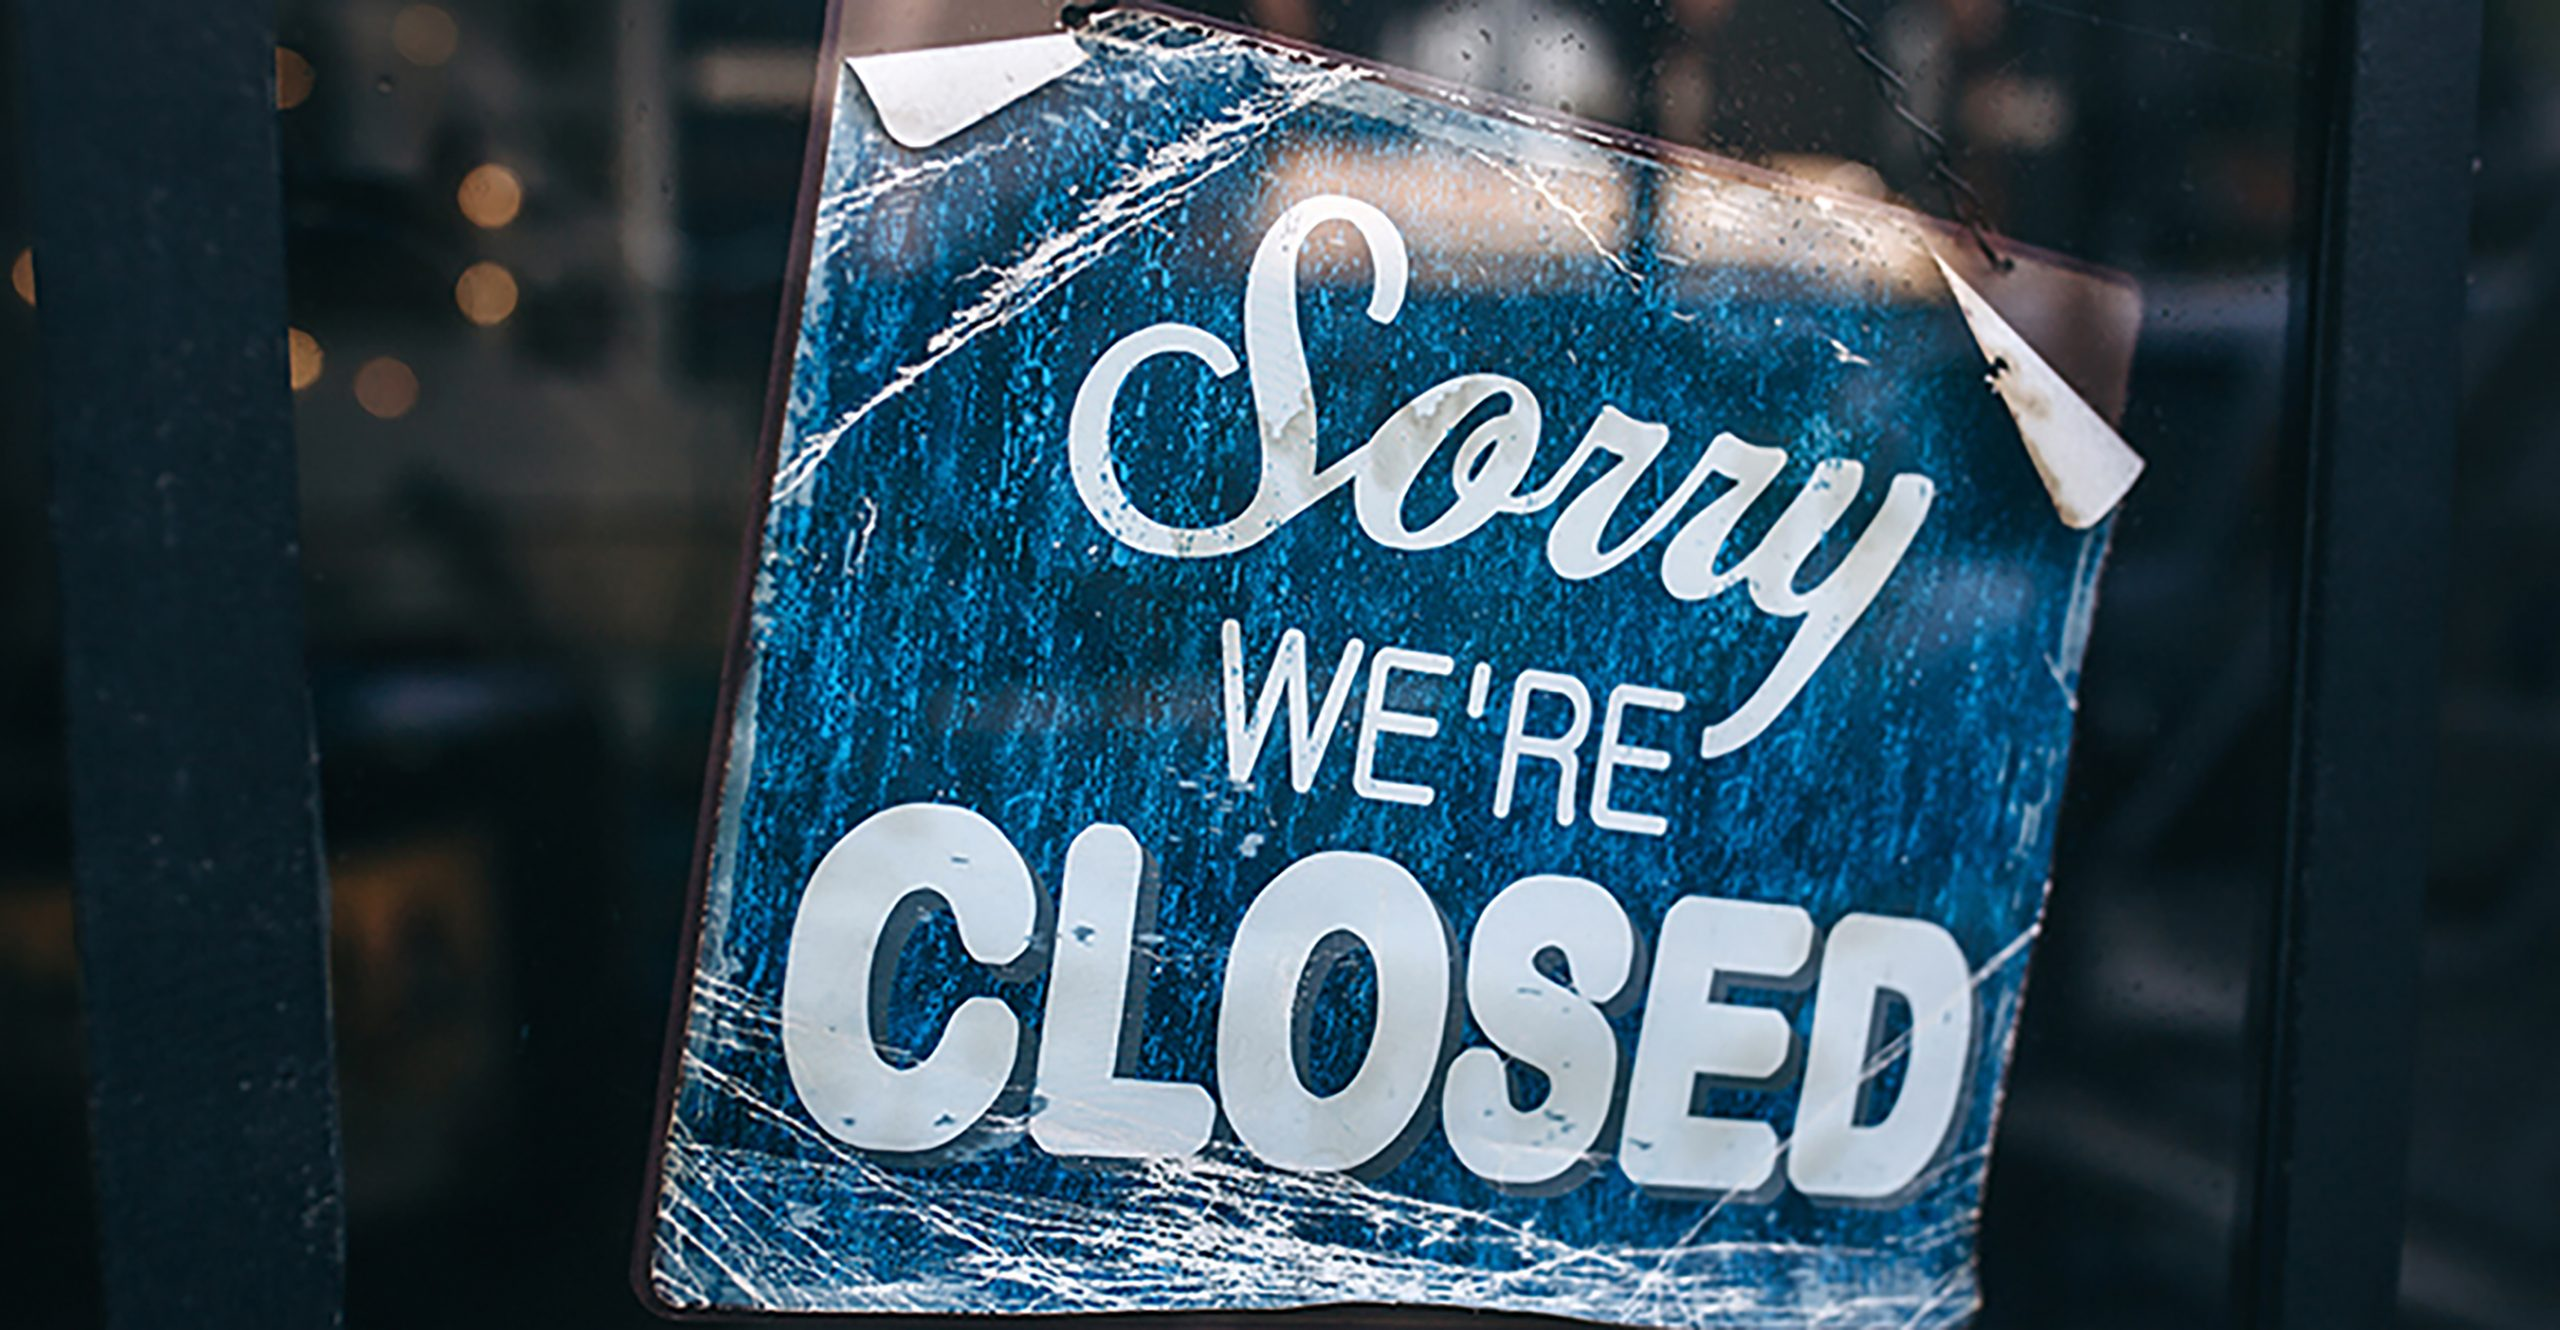 JCDH adds barbershops, hair salons, non-essential retail stores to list of mandatory closures; 'This is not a time to look for loopholes'